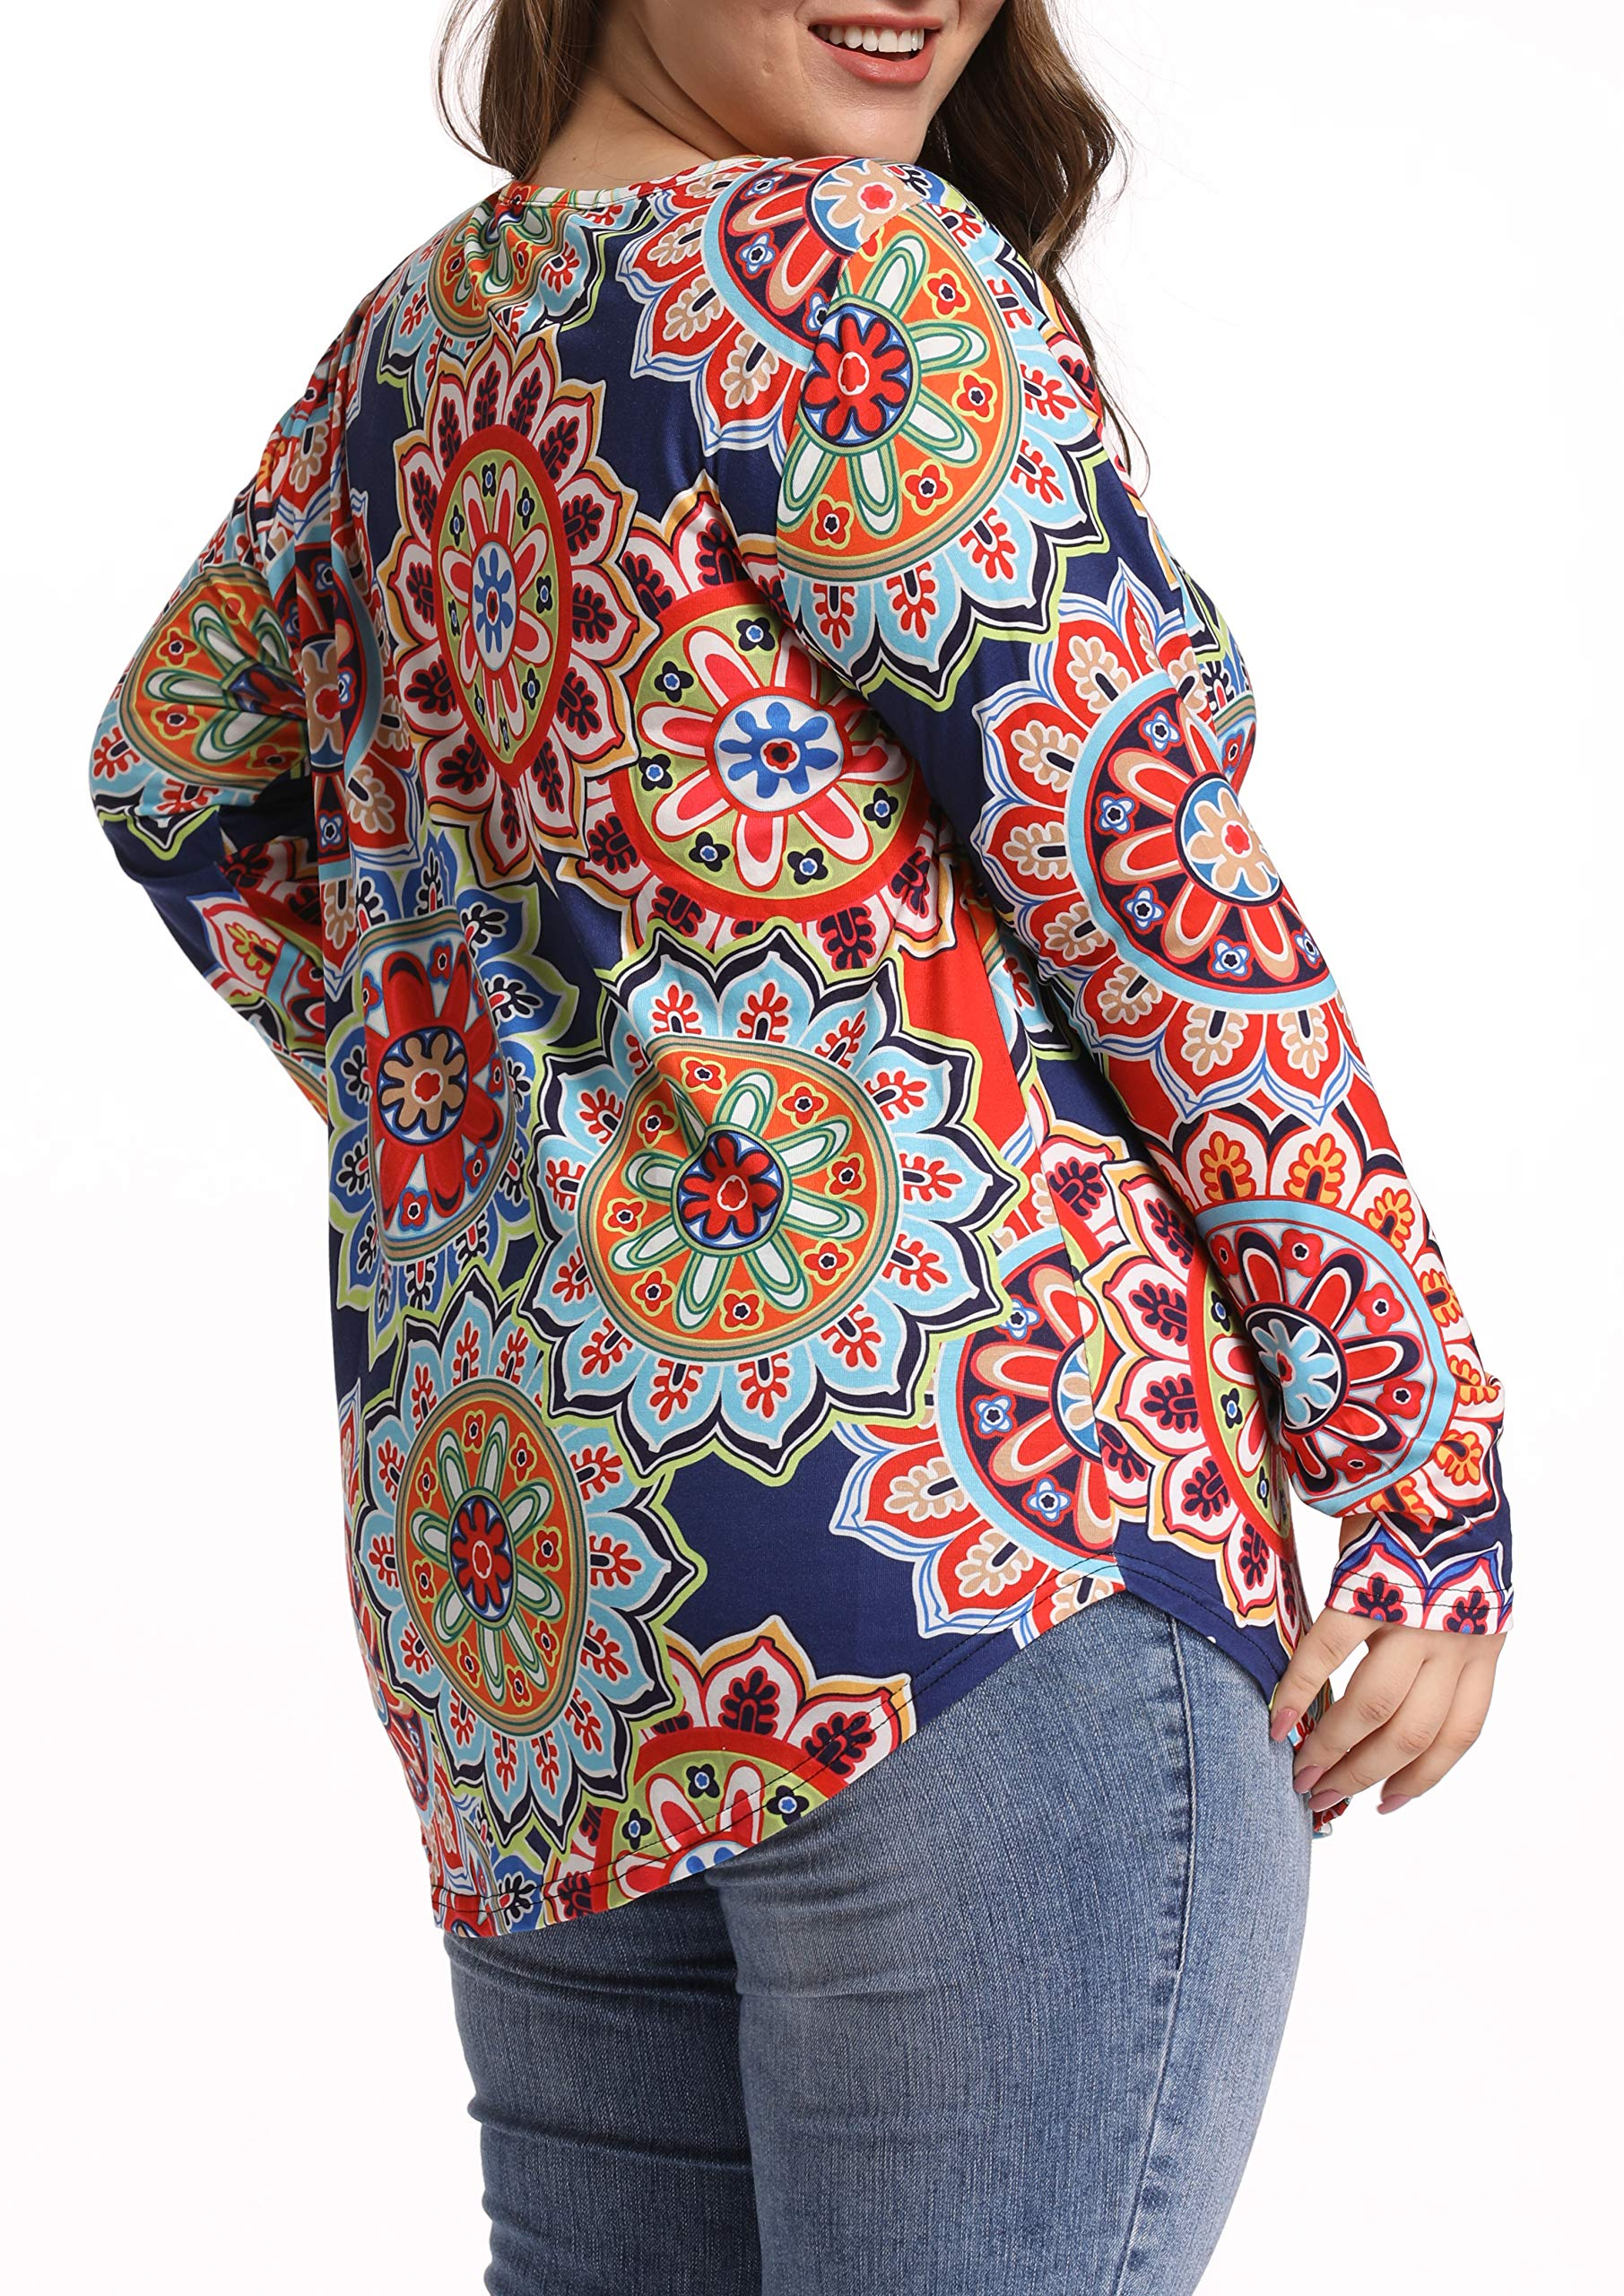 caidyny Sexy V Neck Top Vintage T Shirts Long Sleeve Casual Plus Size Tunic Blouse Shirt